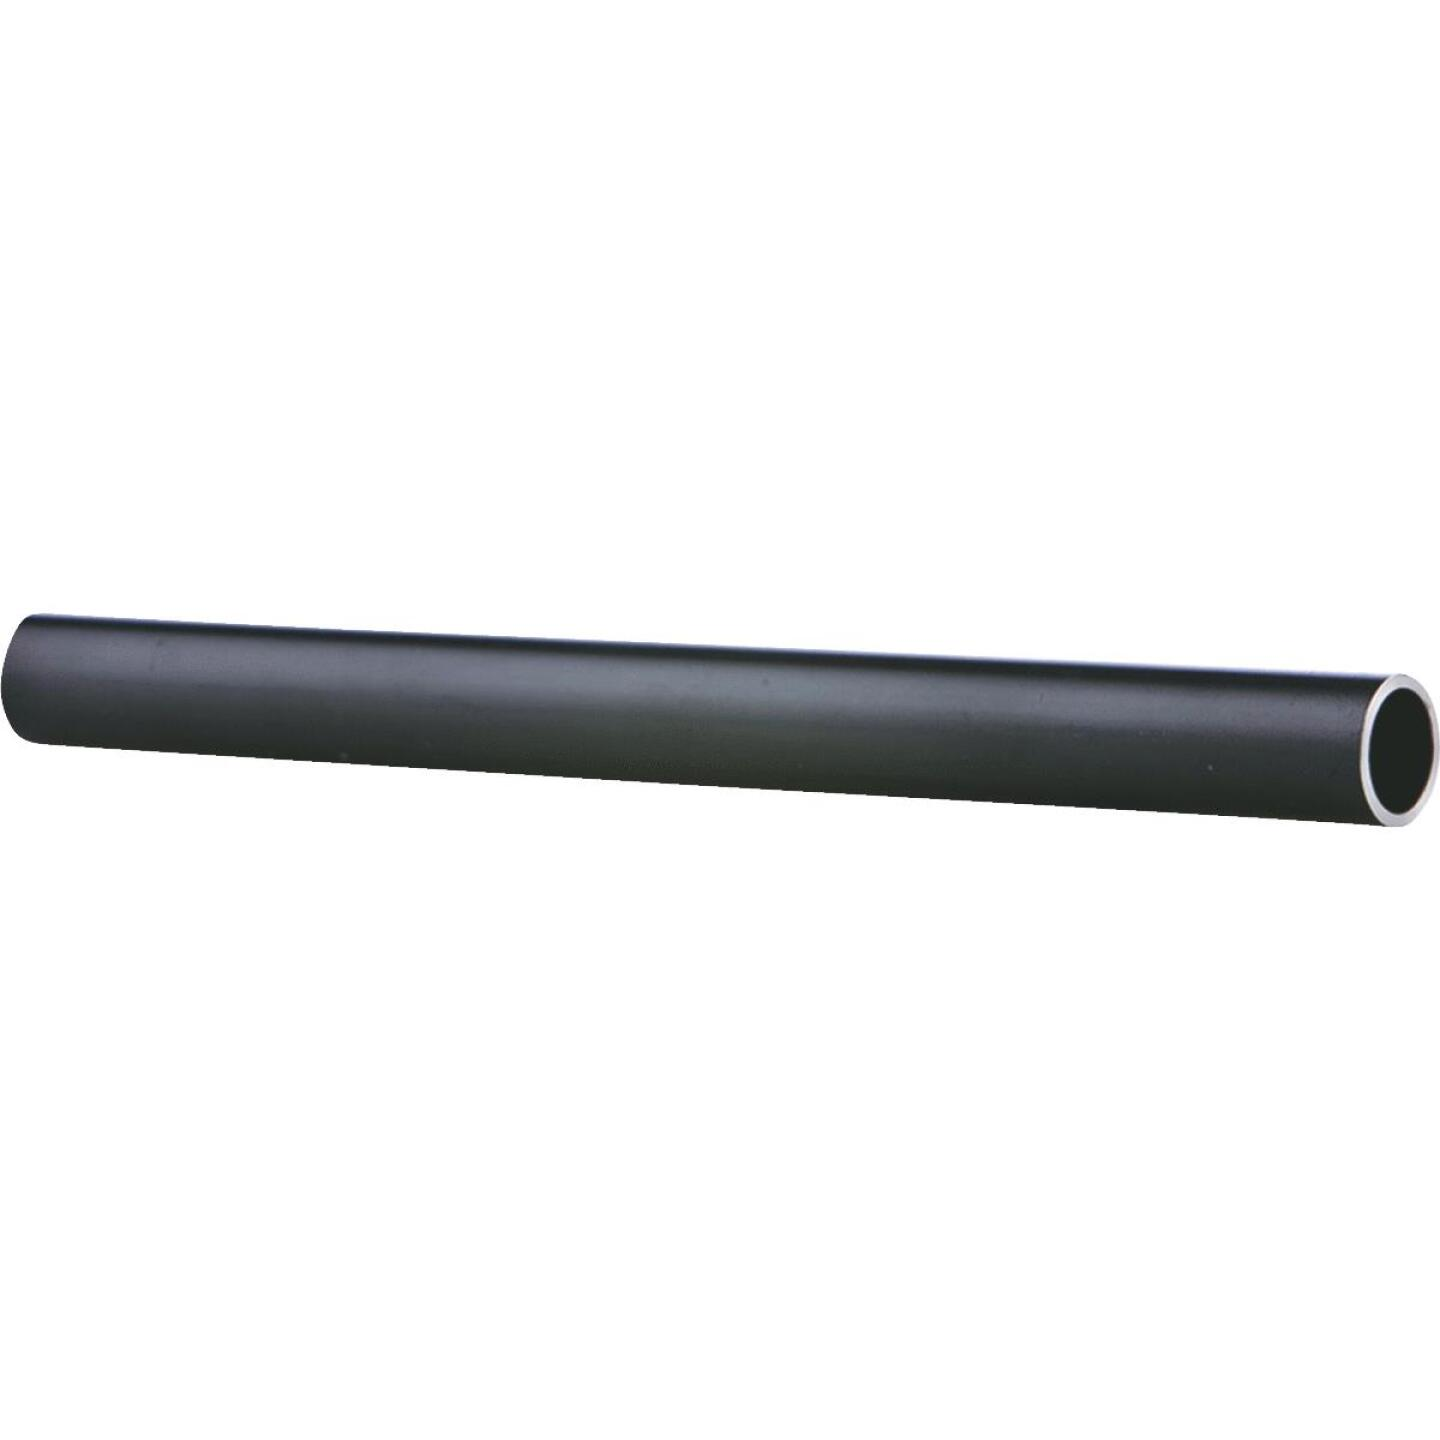 Southland 1-1/2 In. x 21 Ft. Carbon Steel Threaded and Coupled Black Pipe Image 1